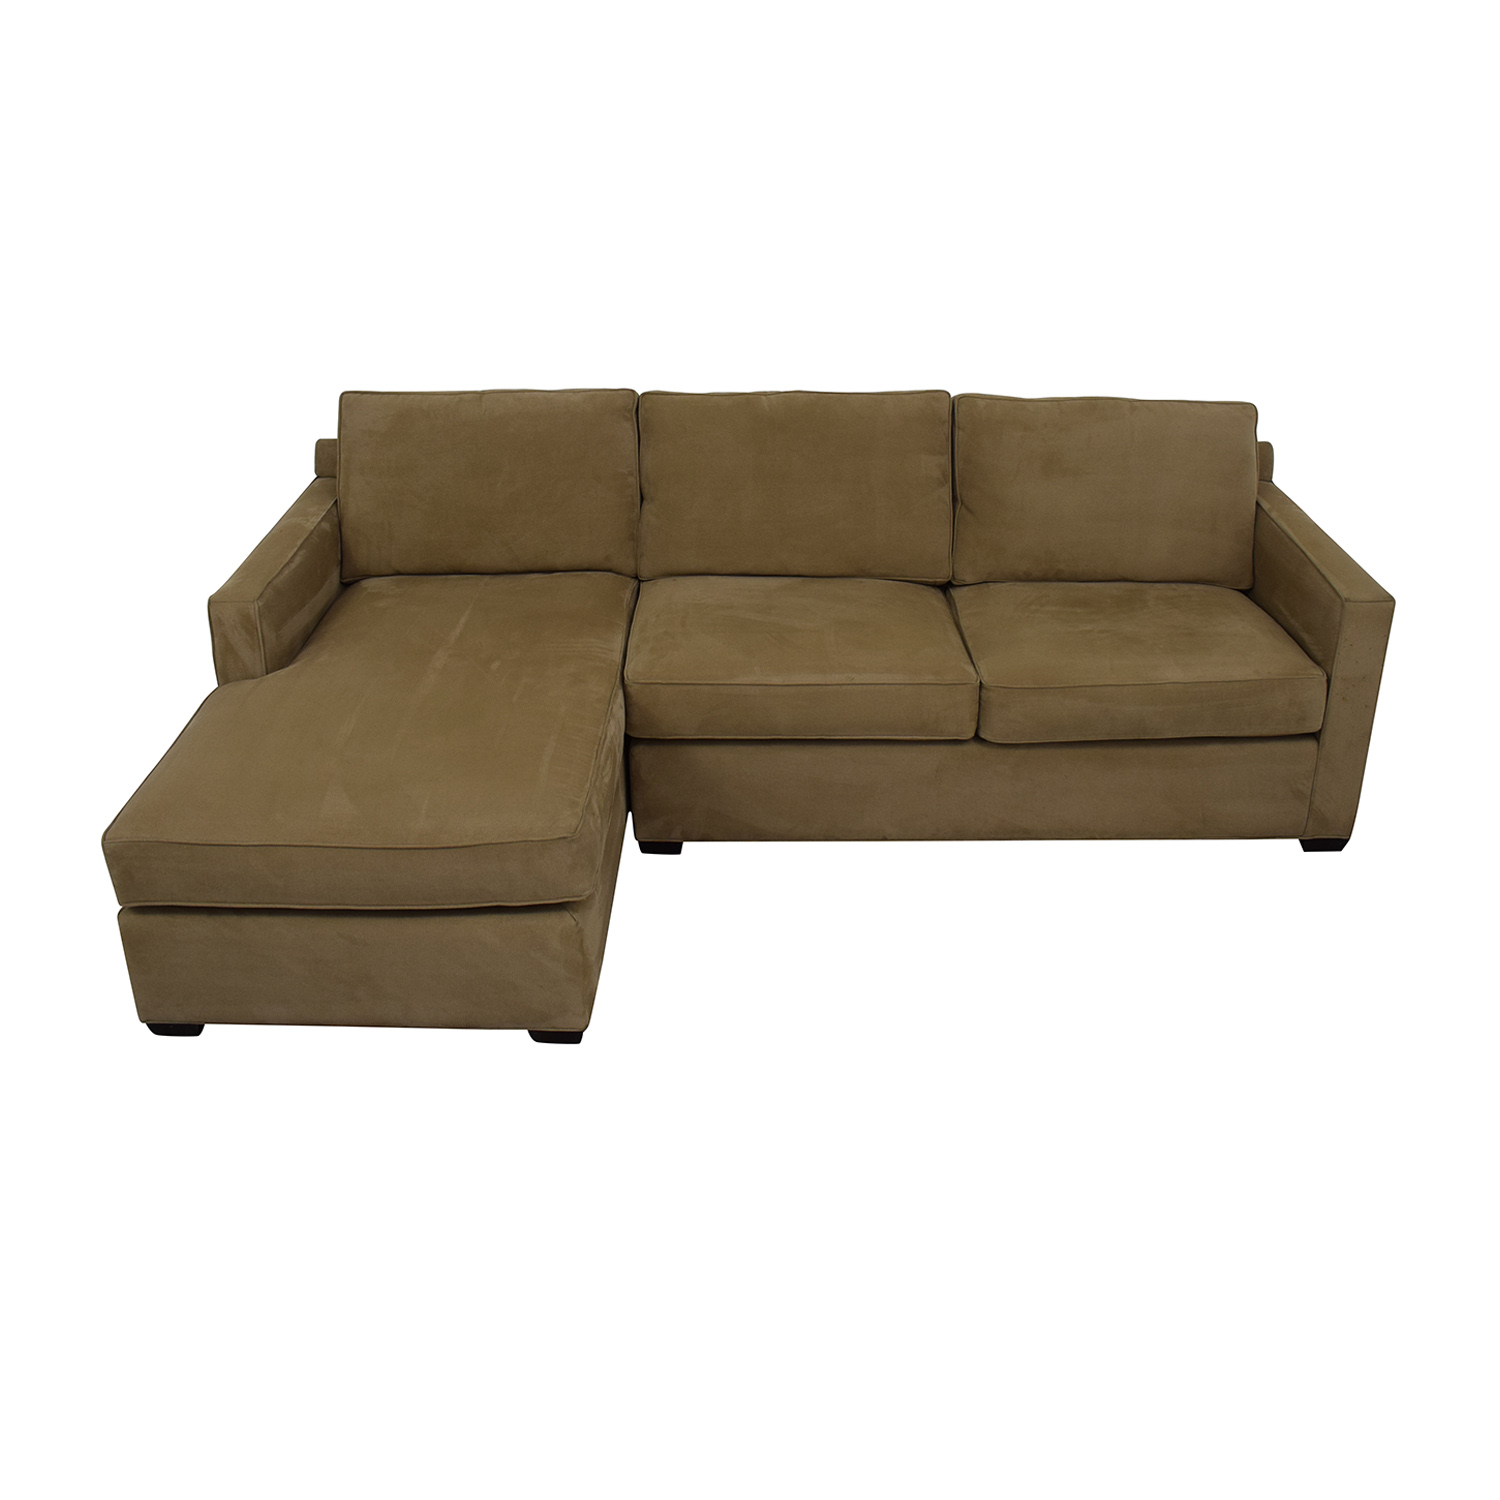 Crate & Barrel Left Chaise Sofa / Sectionals